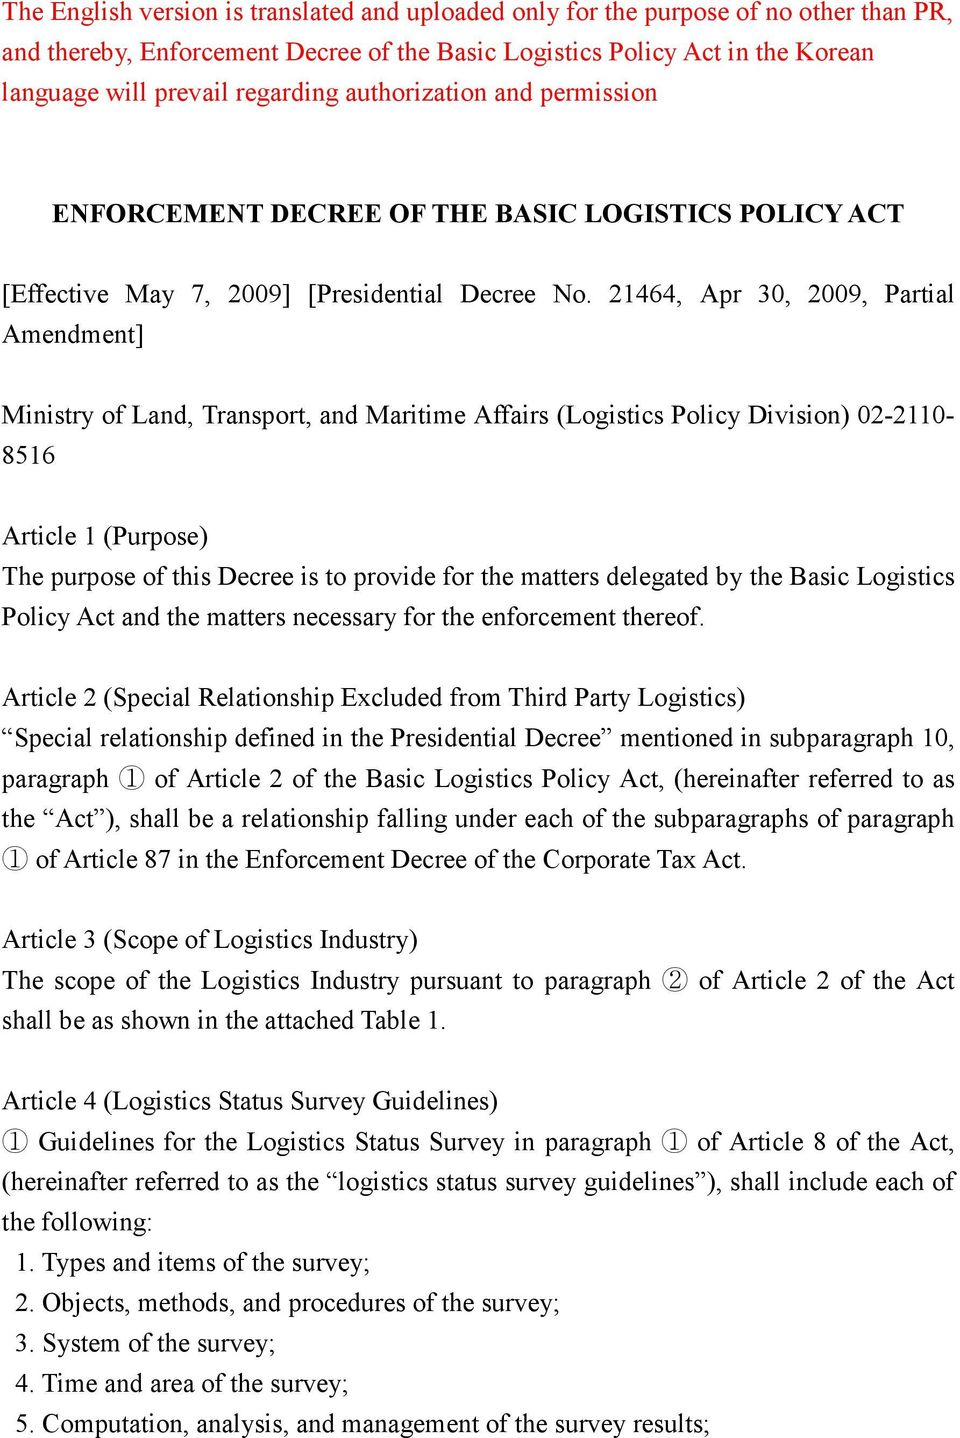 21464, Apr 30, 2009, Partial Amendment] Ministry of Land, Transport, and Maritime Affairs (Logistics Policy Division) 02-2110- 8516 Article 1 (Purpose) The purpose of this Decree is to provide for